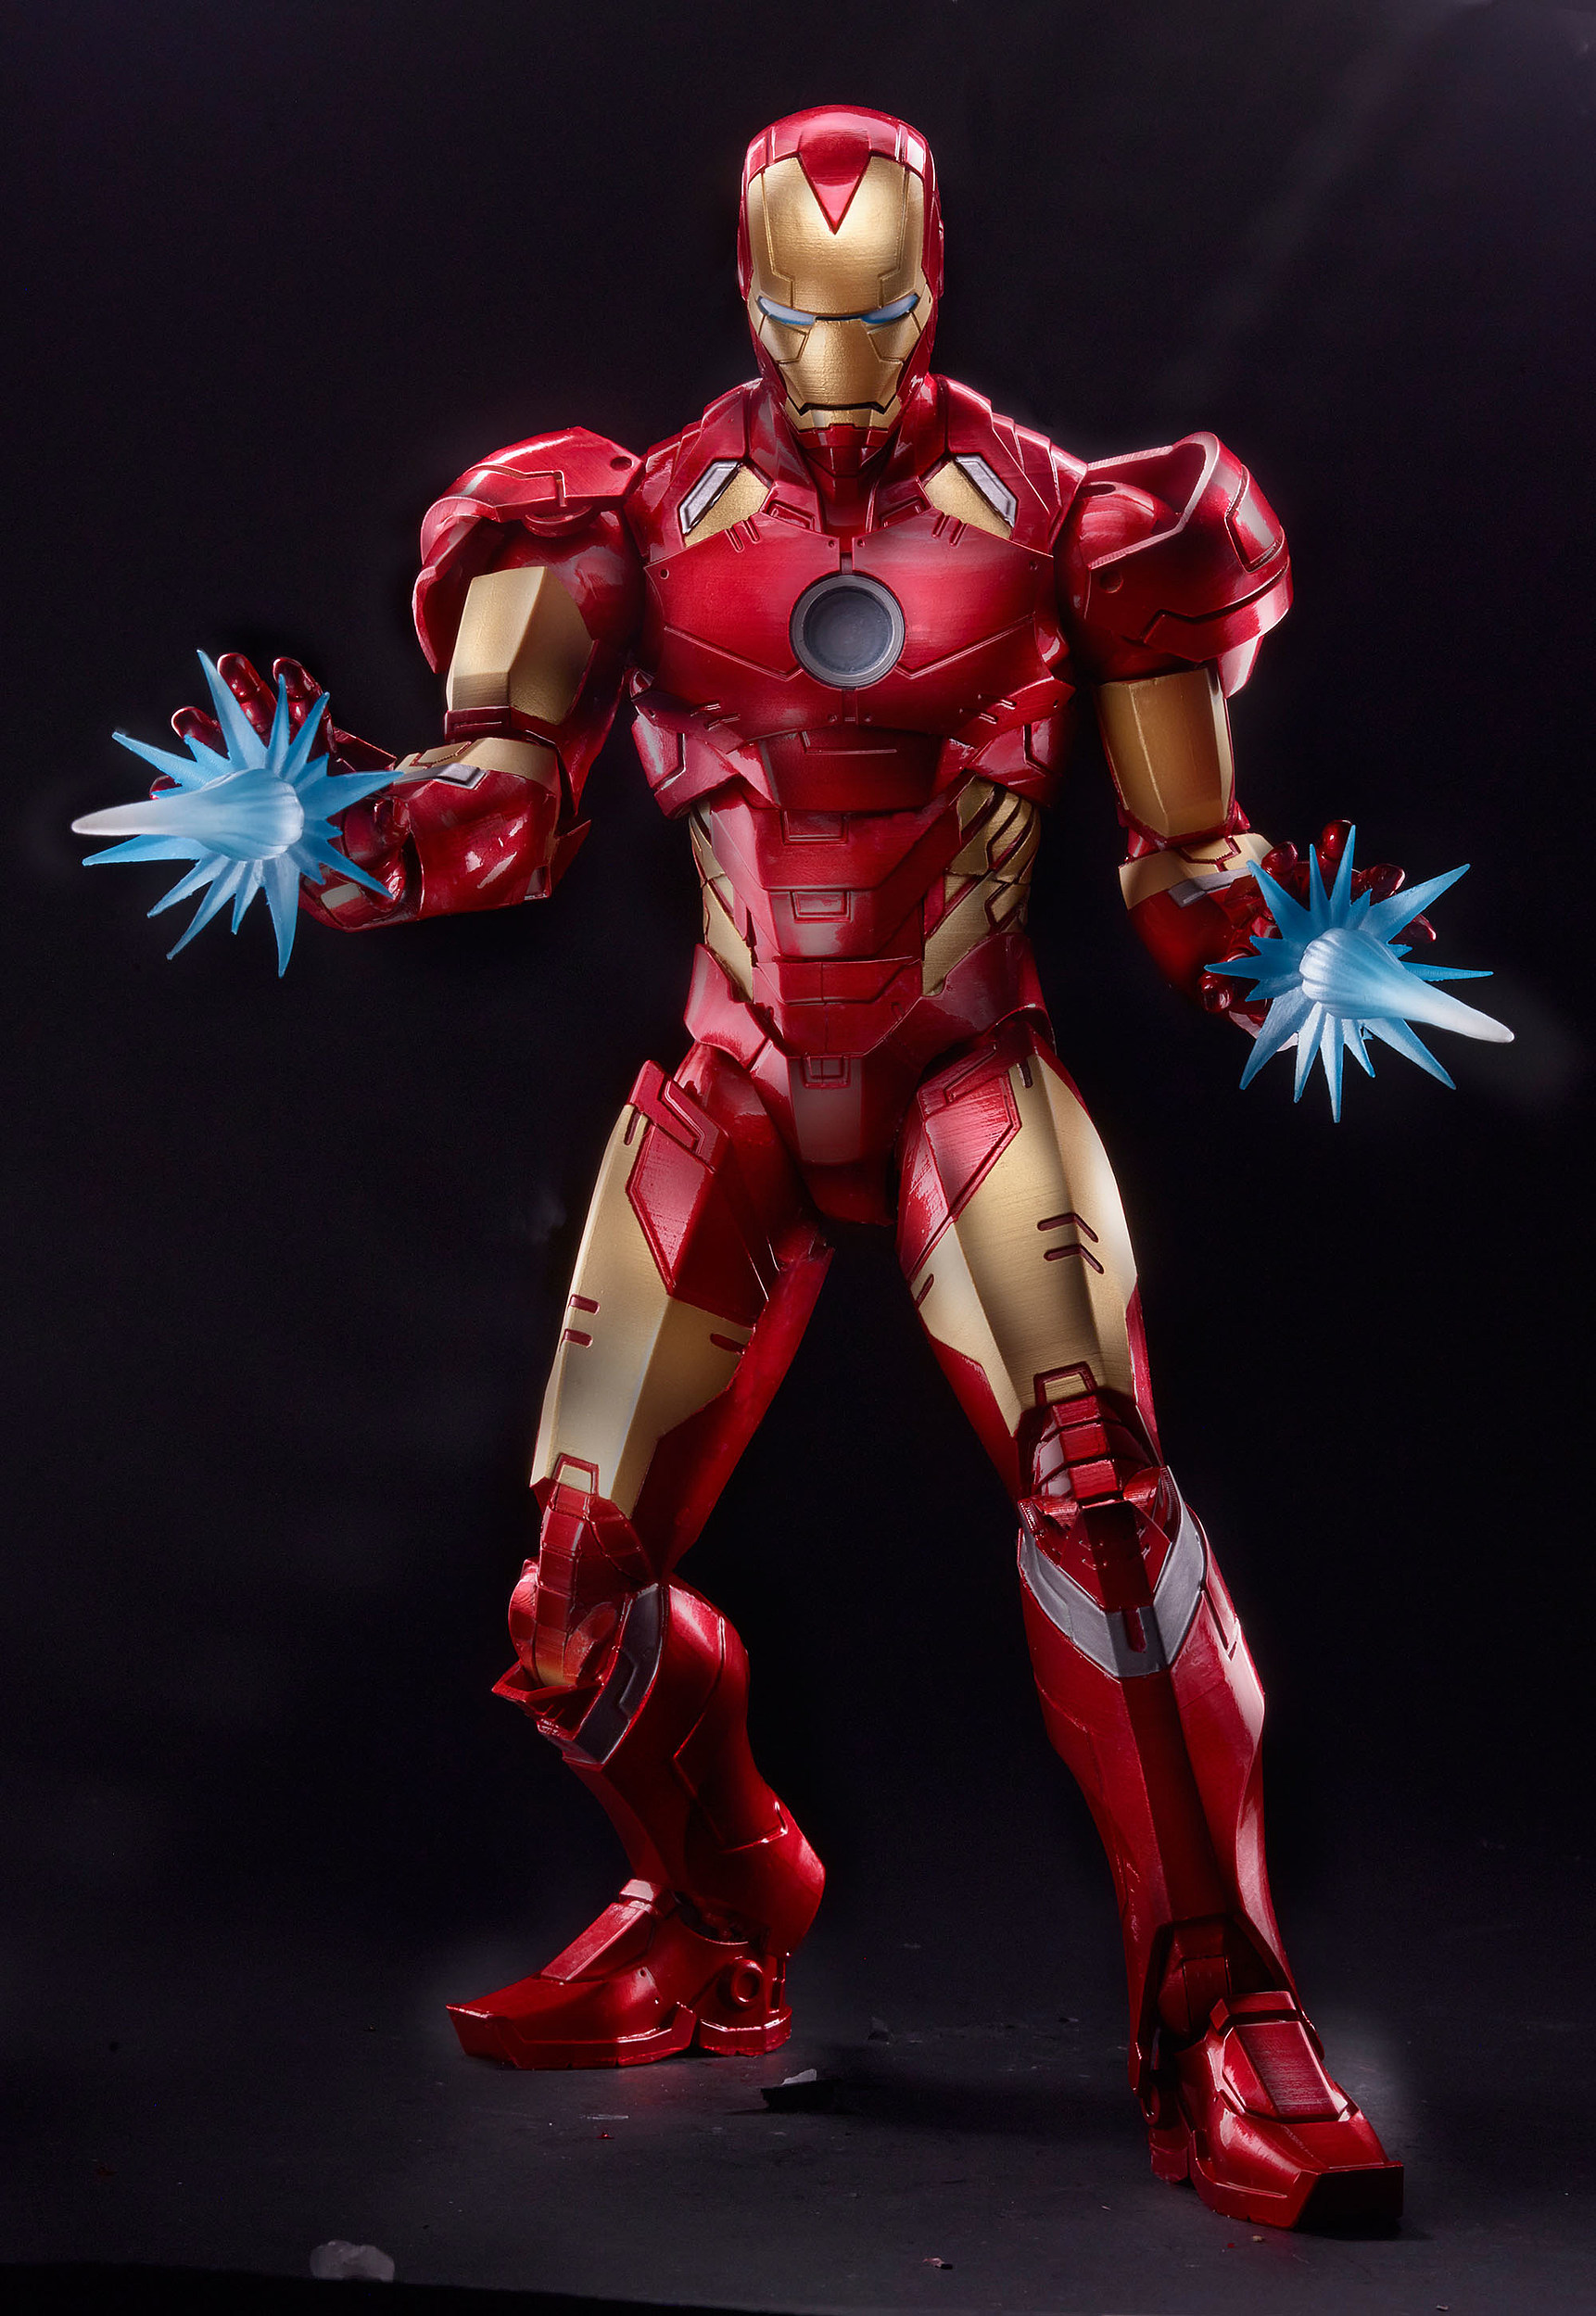 12 Inch Action Figure NEW Marvel Legends Series Iron Man